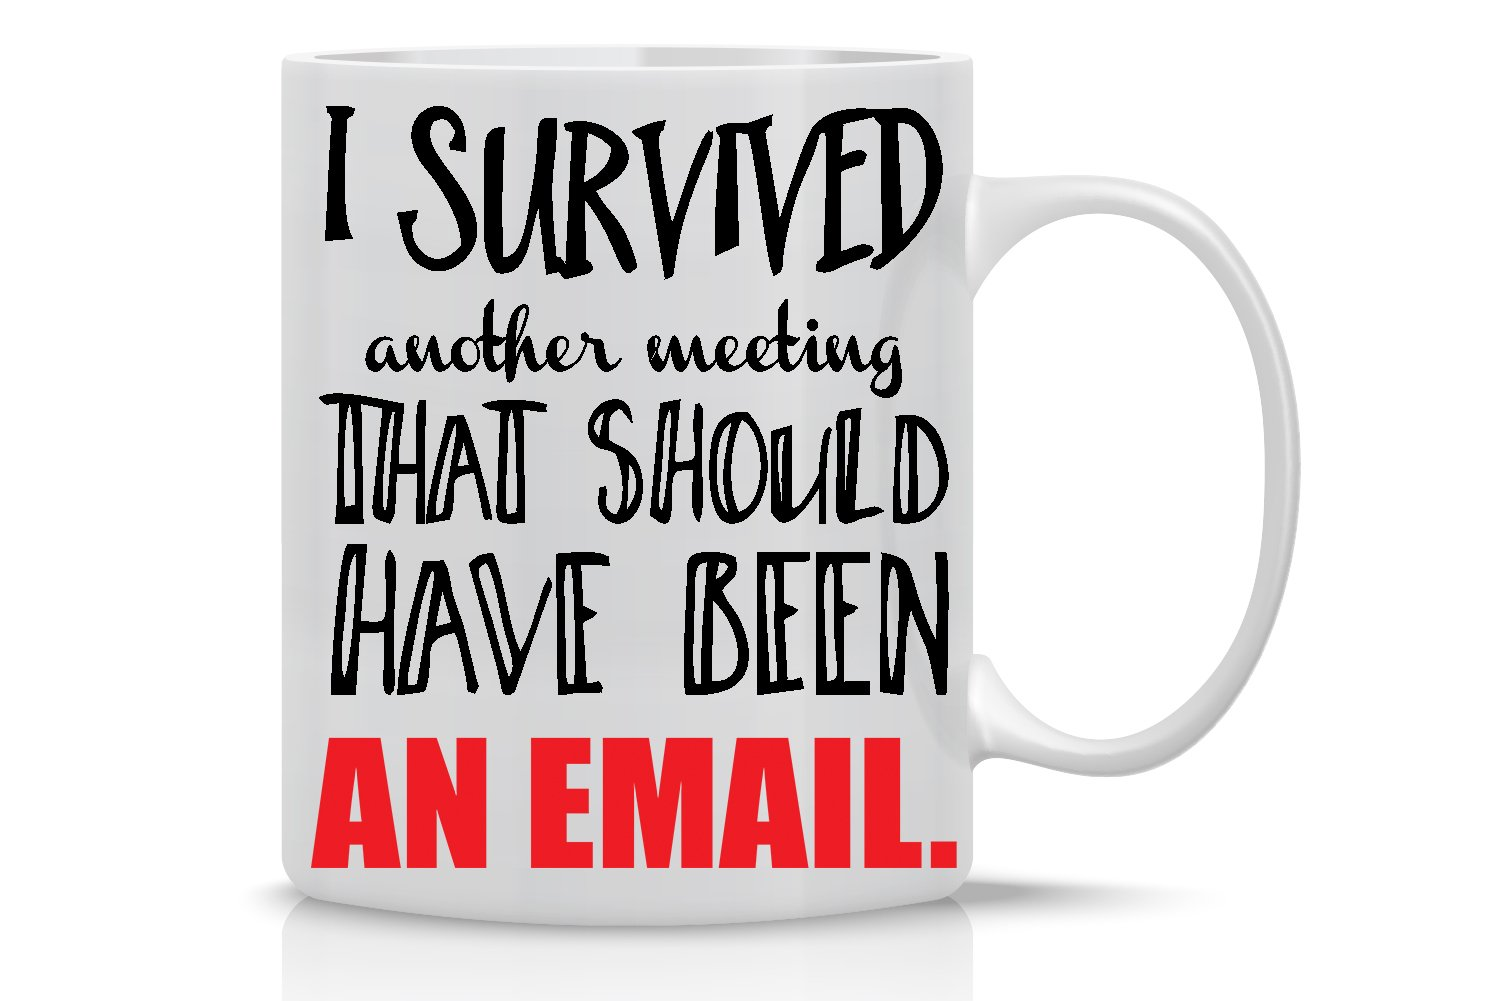 I Survived Another Meeting That Should Have Been An Email Mug- Funny Sarcastic Mug - 11OZ Coffee Mug - Funny Sarcastic Coffee Mug - Funny Office Mug - By AW Fashions